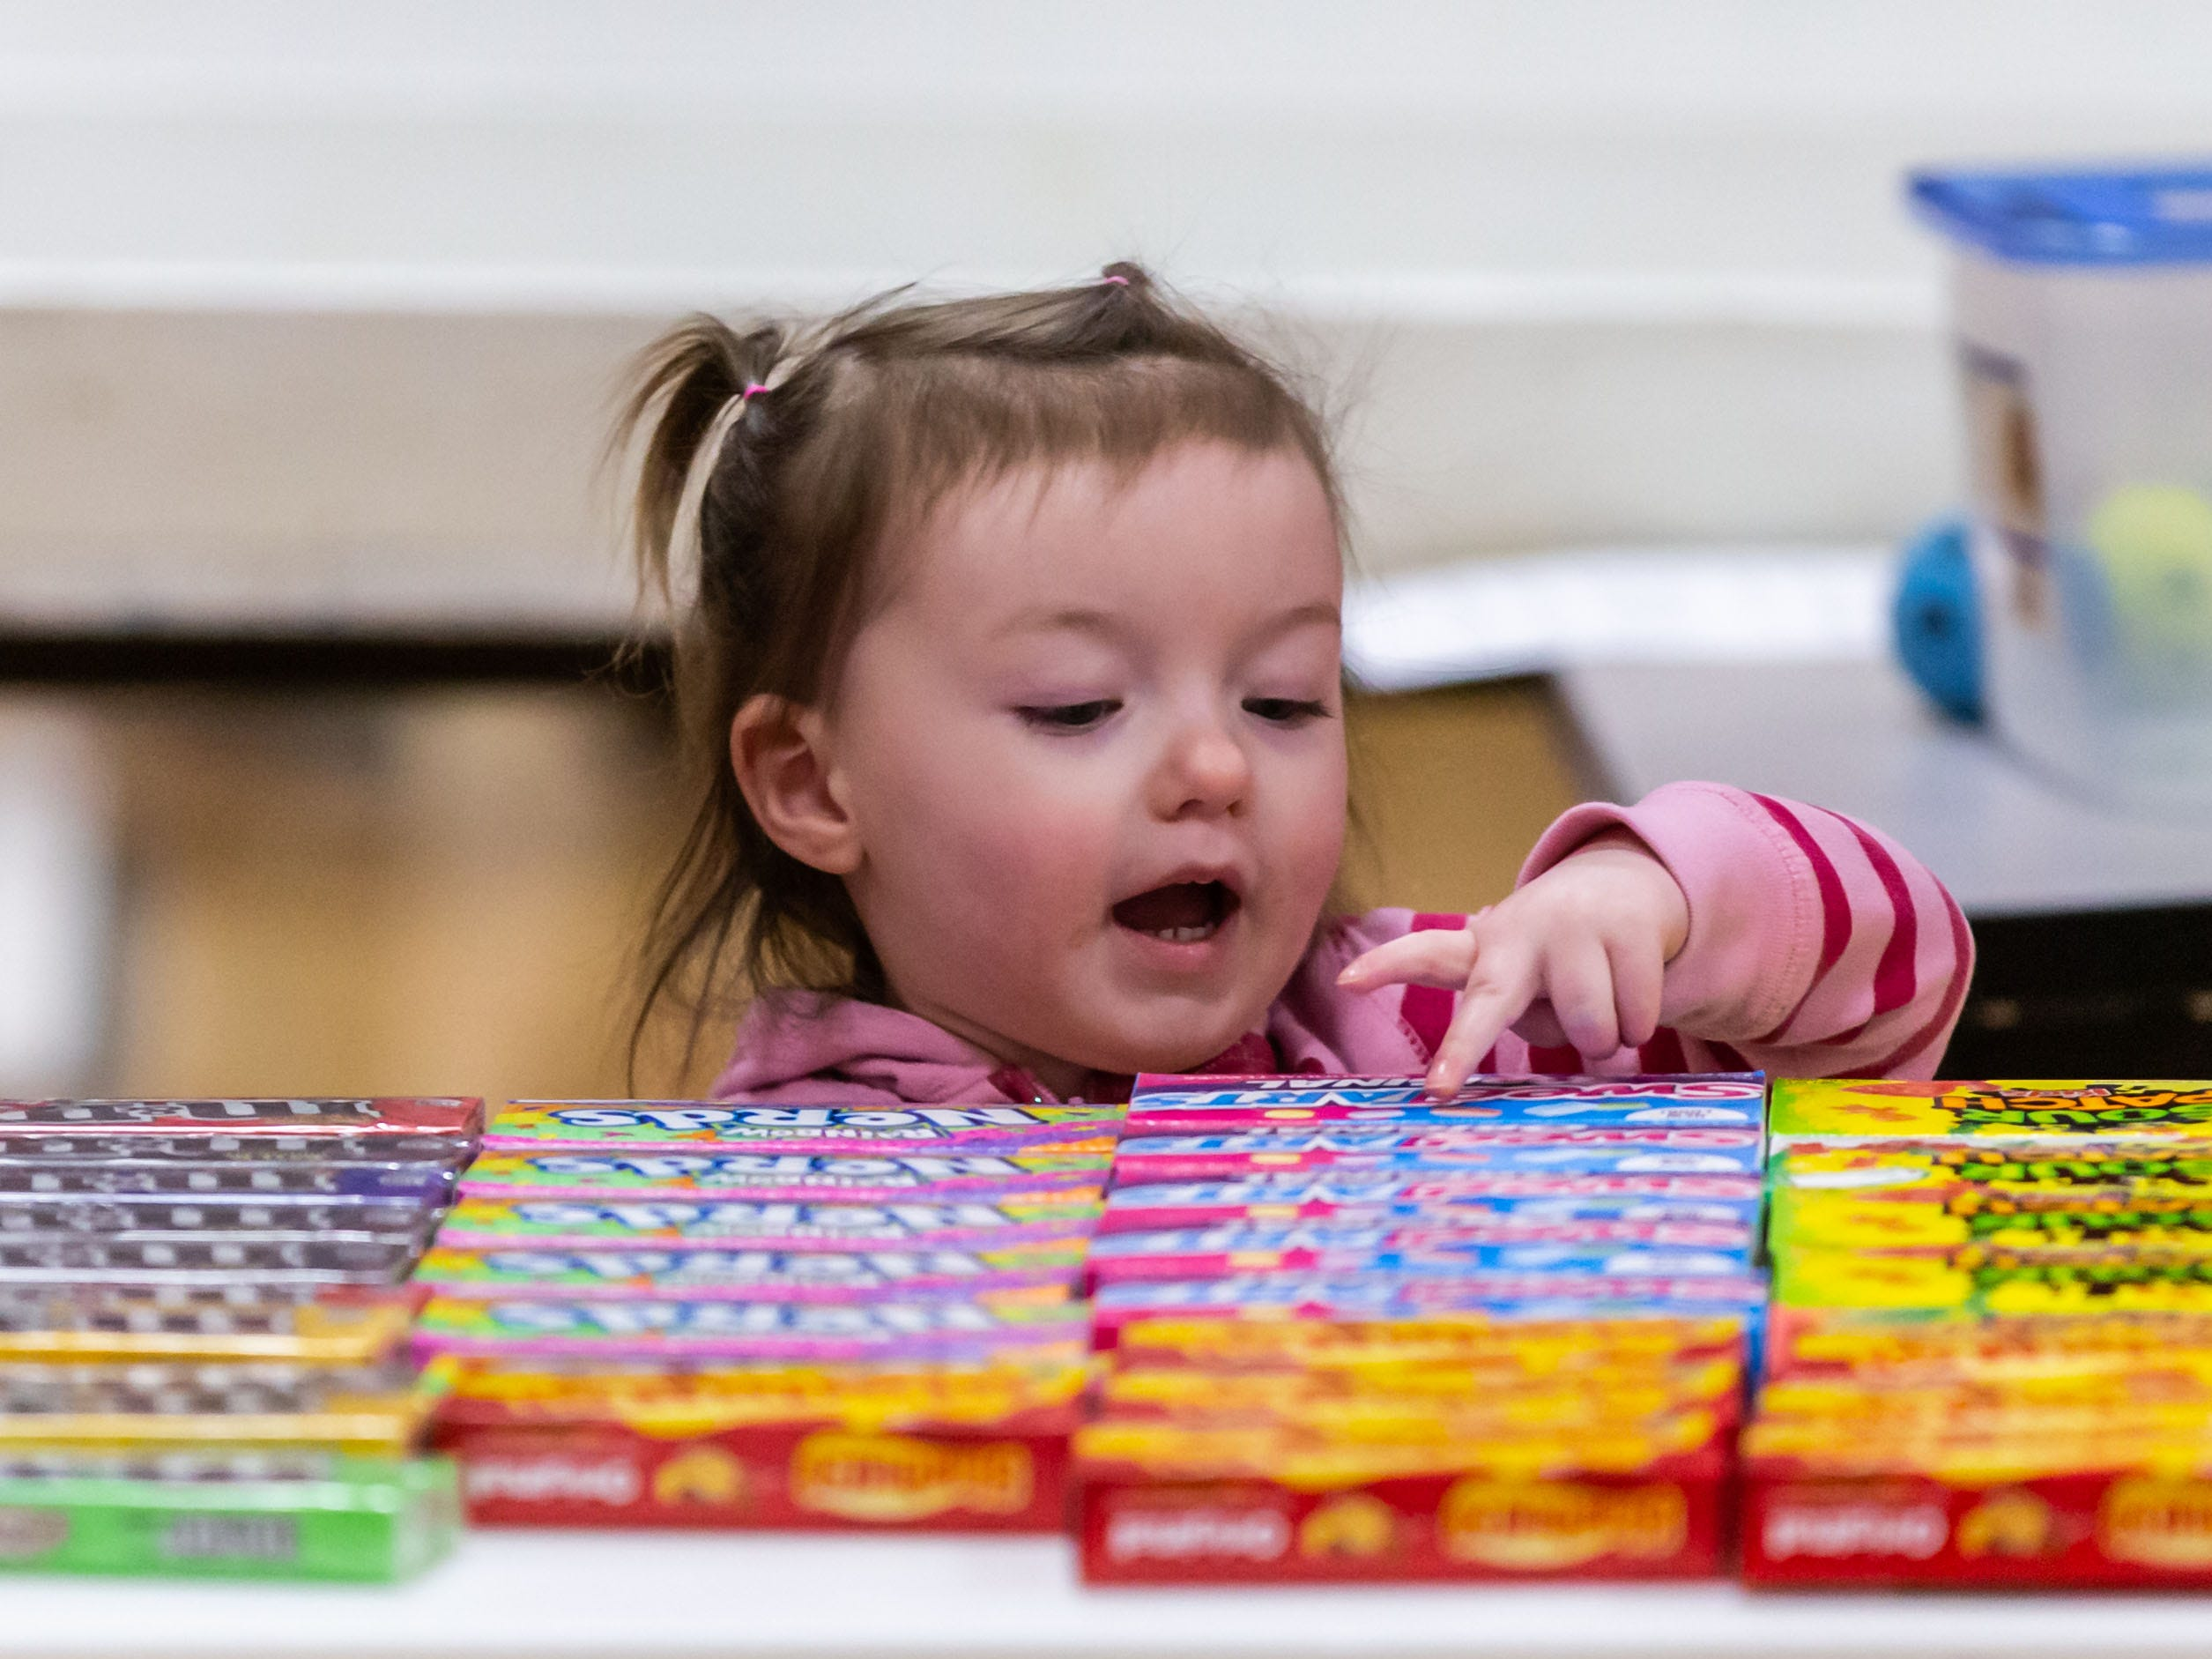 Two-year-old Emma Cina of Mayville chooses a candy prize during the Winter Carnival at St. Matthew's Lutheran School in Oconomowoc on Saturday, March 9, 2019. The event featured a huge prize booth, games, food, a silent auction and more. Proceeds from the Winter Carnival will be used to purchase non budgeted school items.